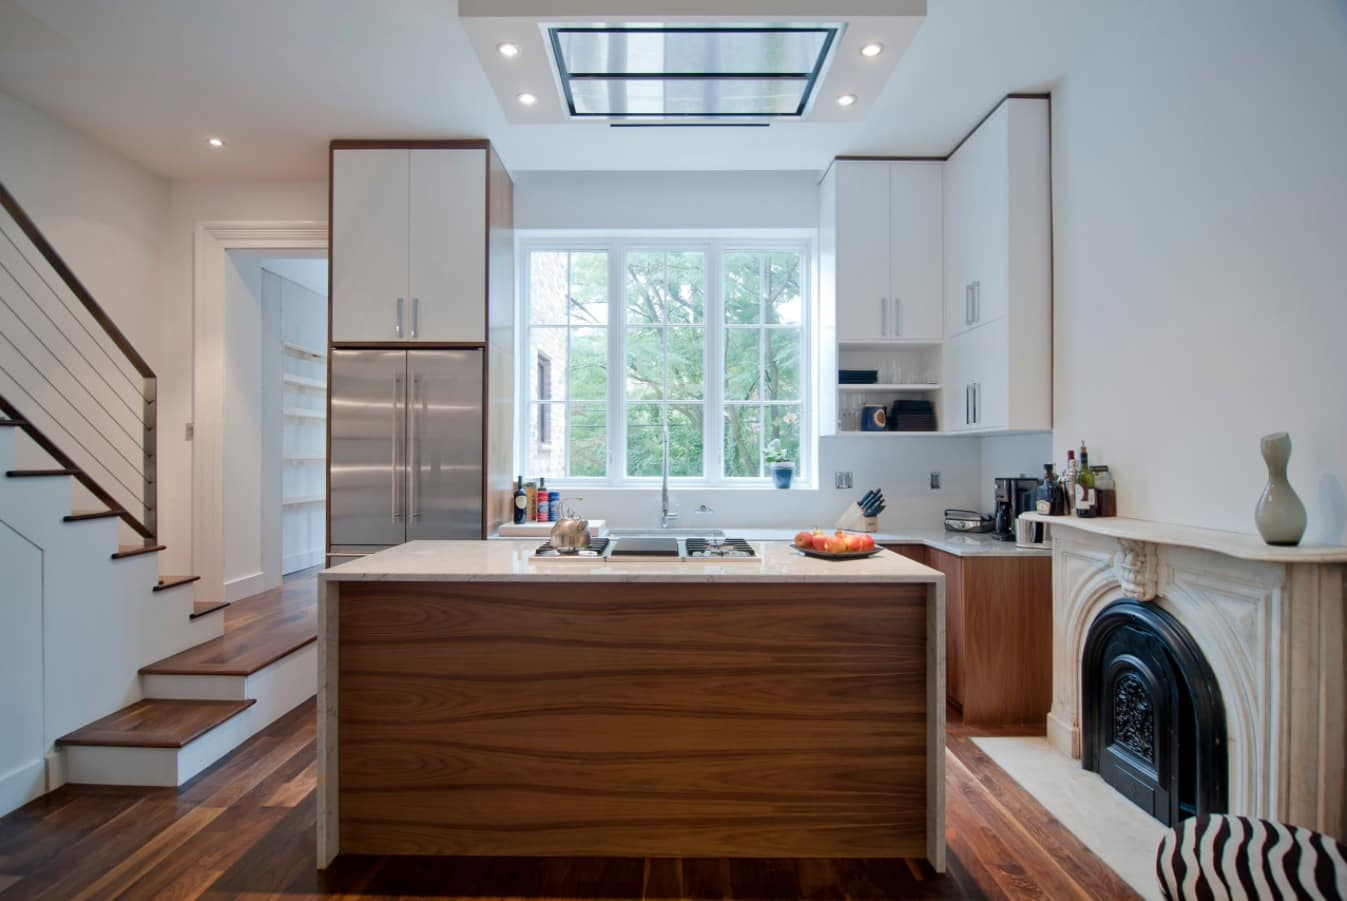 Best Townhouse Decor Ideas. Large window, white furniture, modern flat LED ceiling lamp and central kitchen island for contemporary space